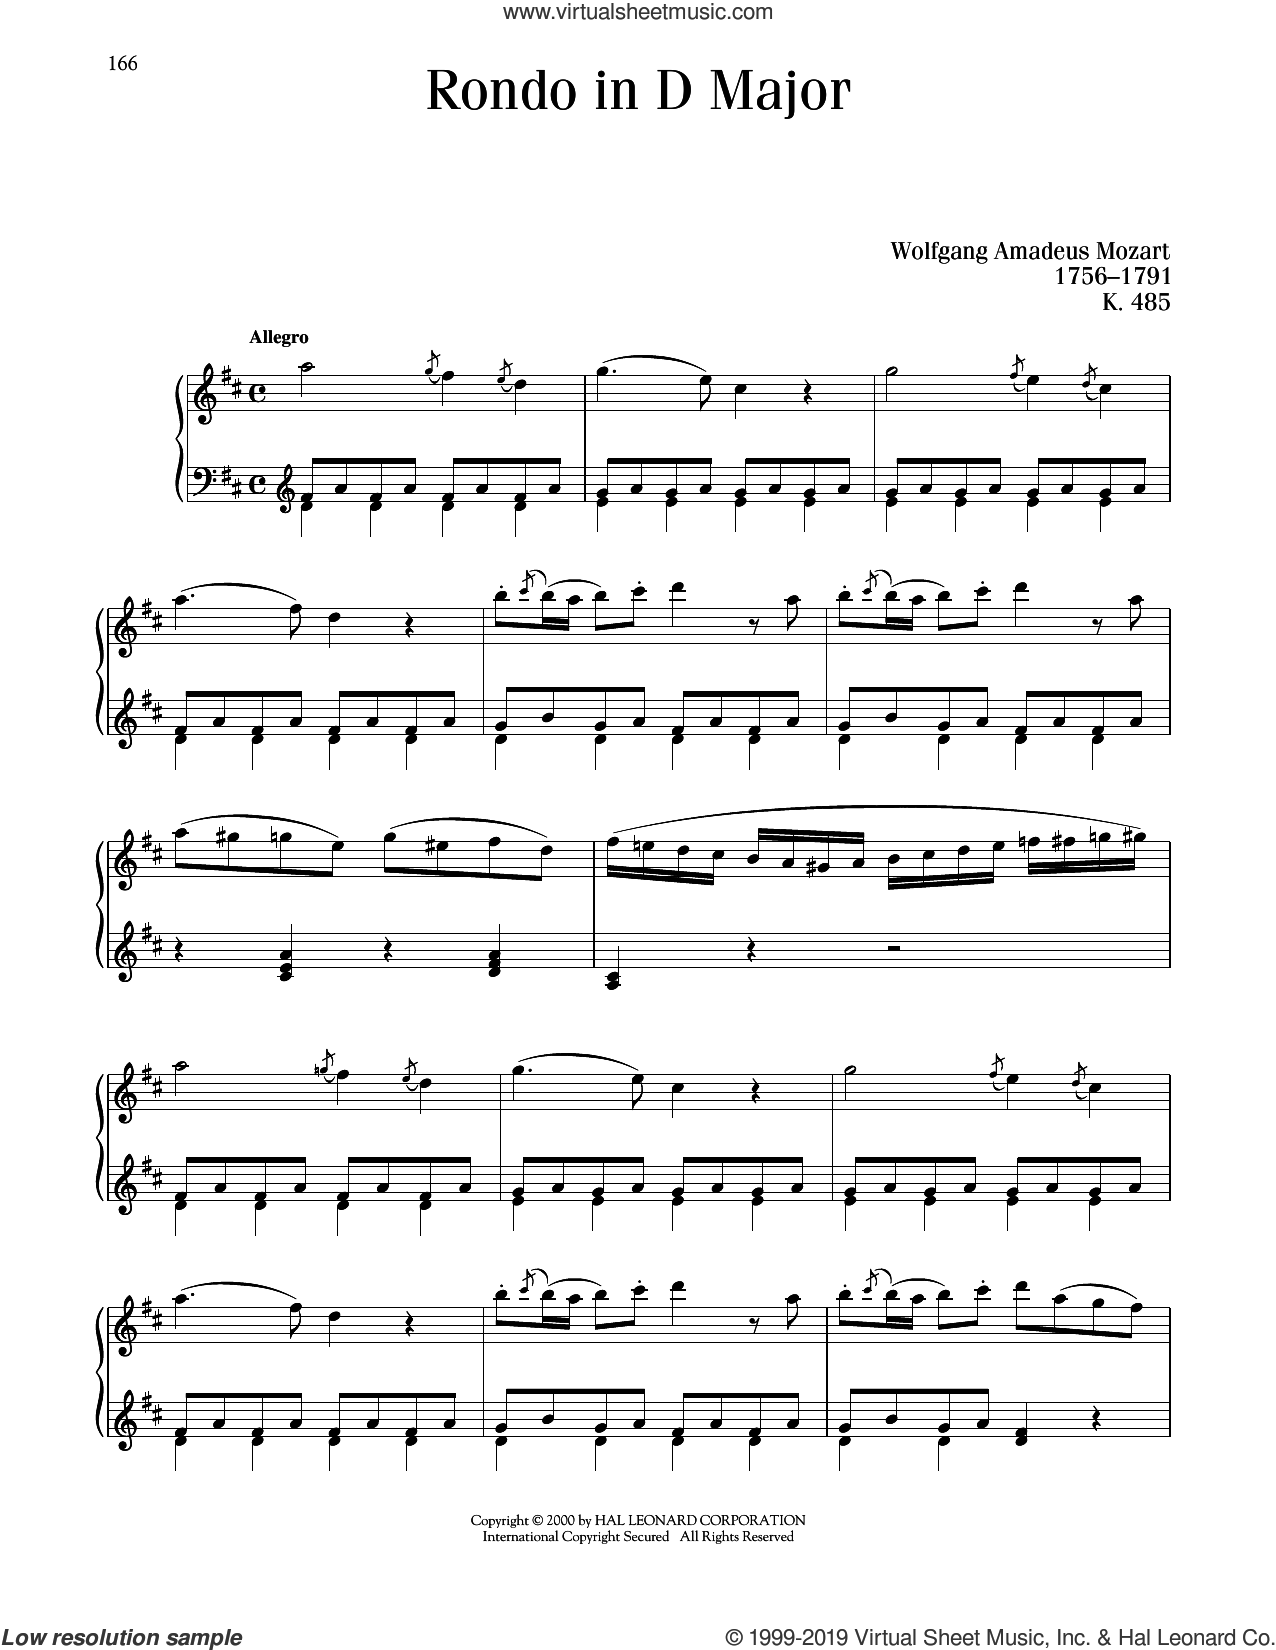 Rondo In D Major, K. 485 sheet music for piano solo by Wolfgang Amadeus Mozart, classical score, intermediate skill level